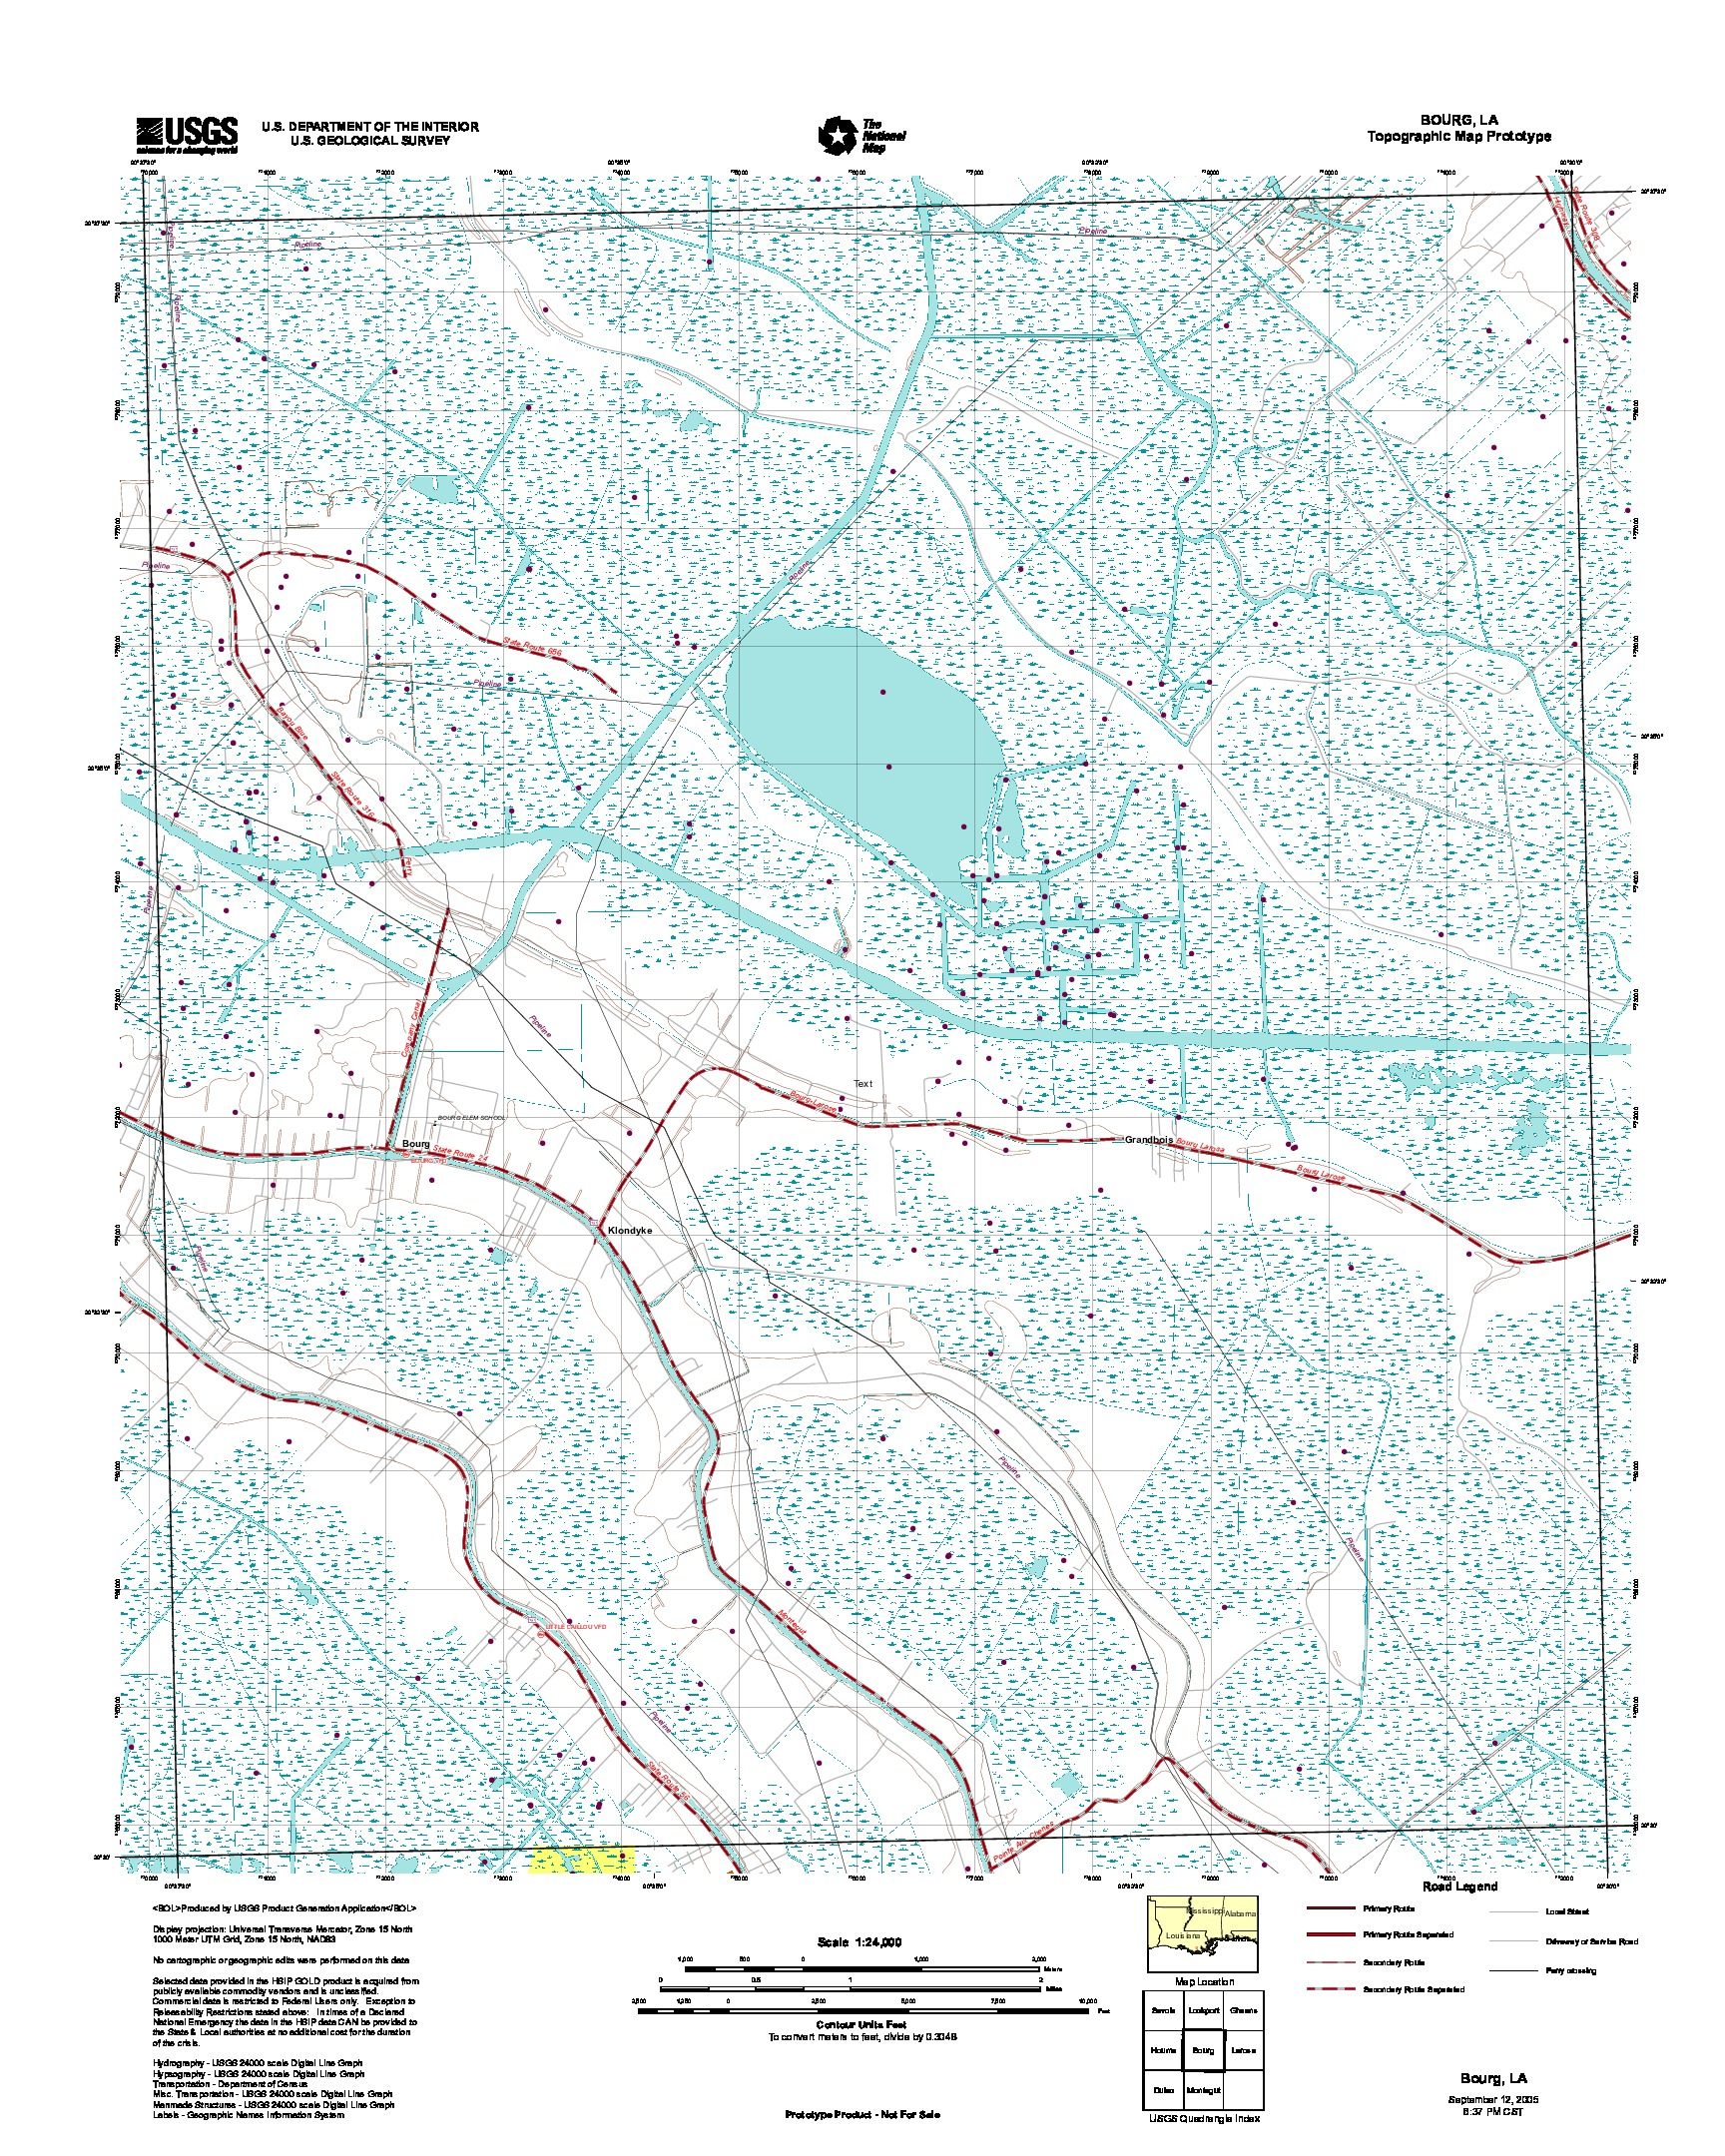 Bourg, Topographic Map Prototype, Louisiana, United States, September 12, 2005